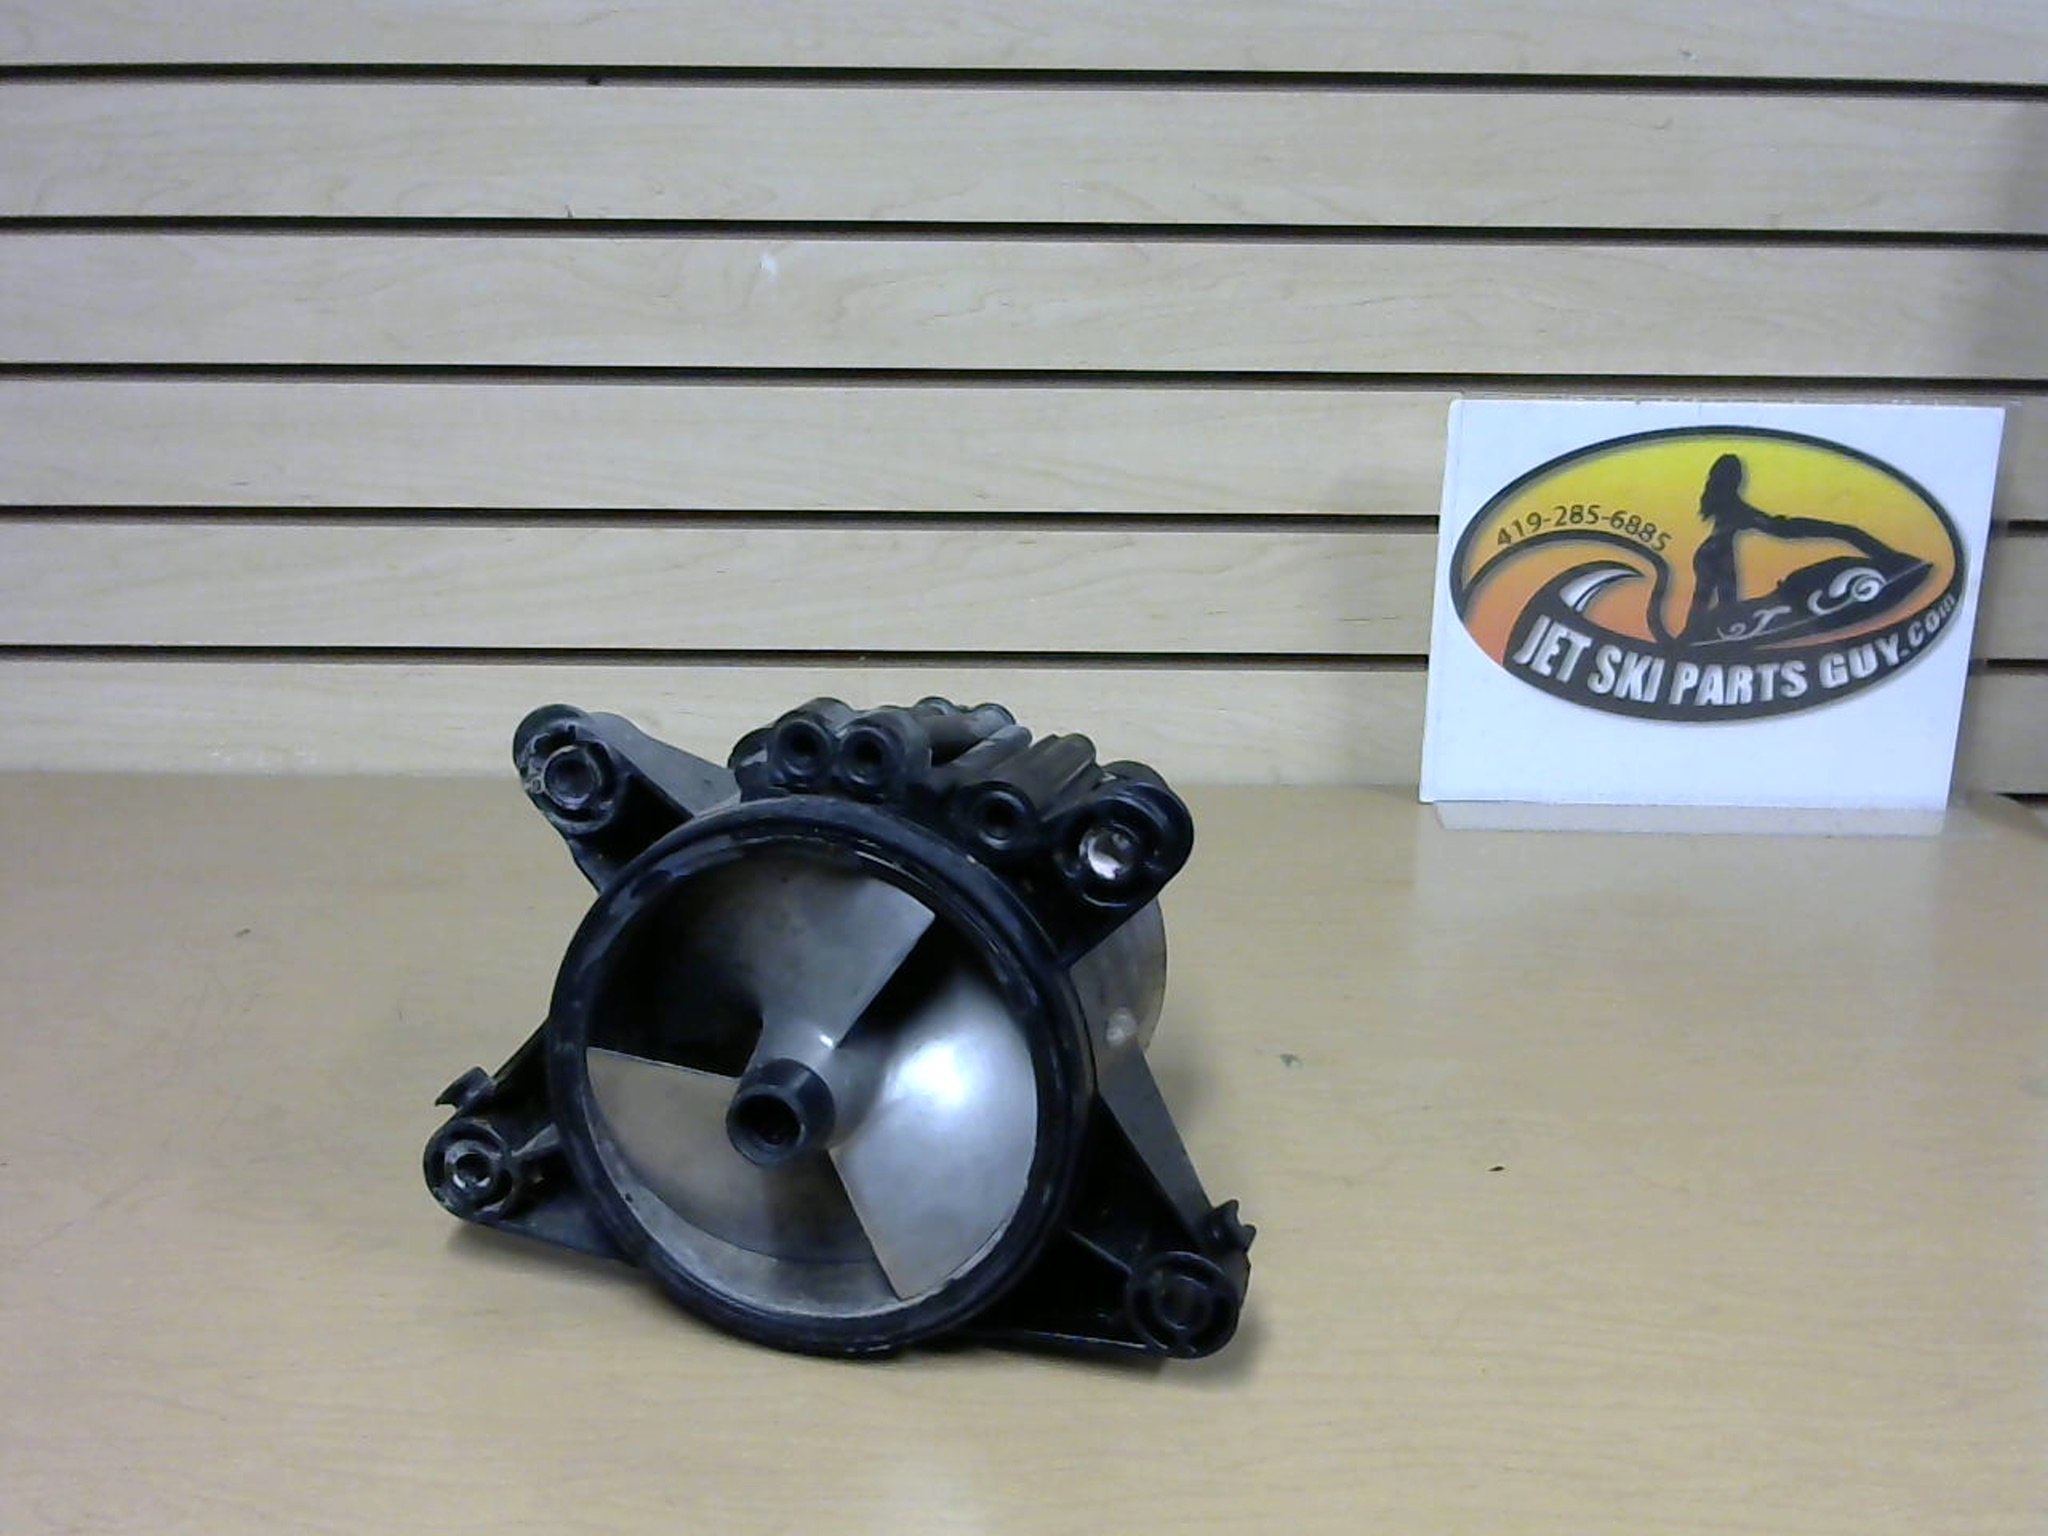 1996 Seadoo GSX 787 Great Condition OEM Jet Pump Impeller Wear Ring  Assembly 271000660 - Used Jetski Parts - jetskipartsguy com